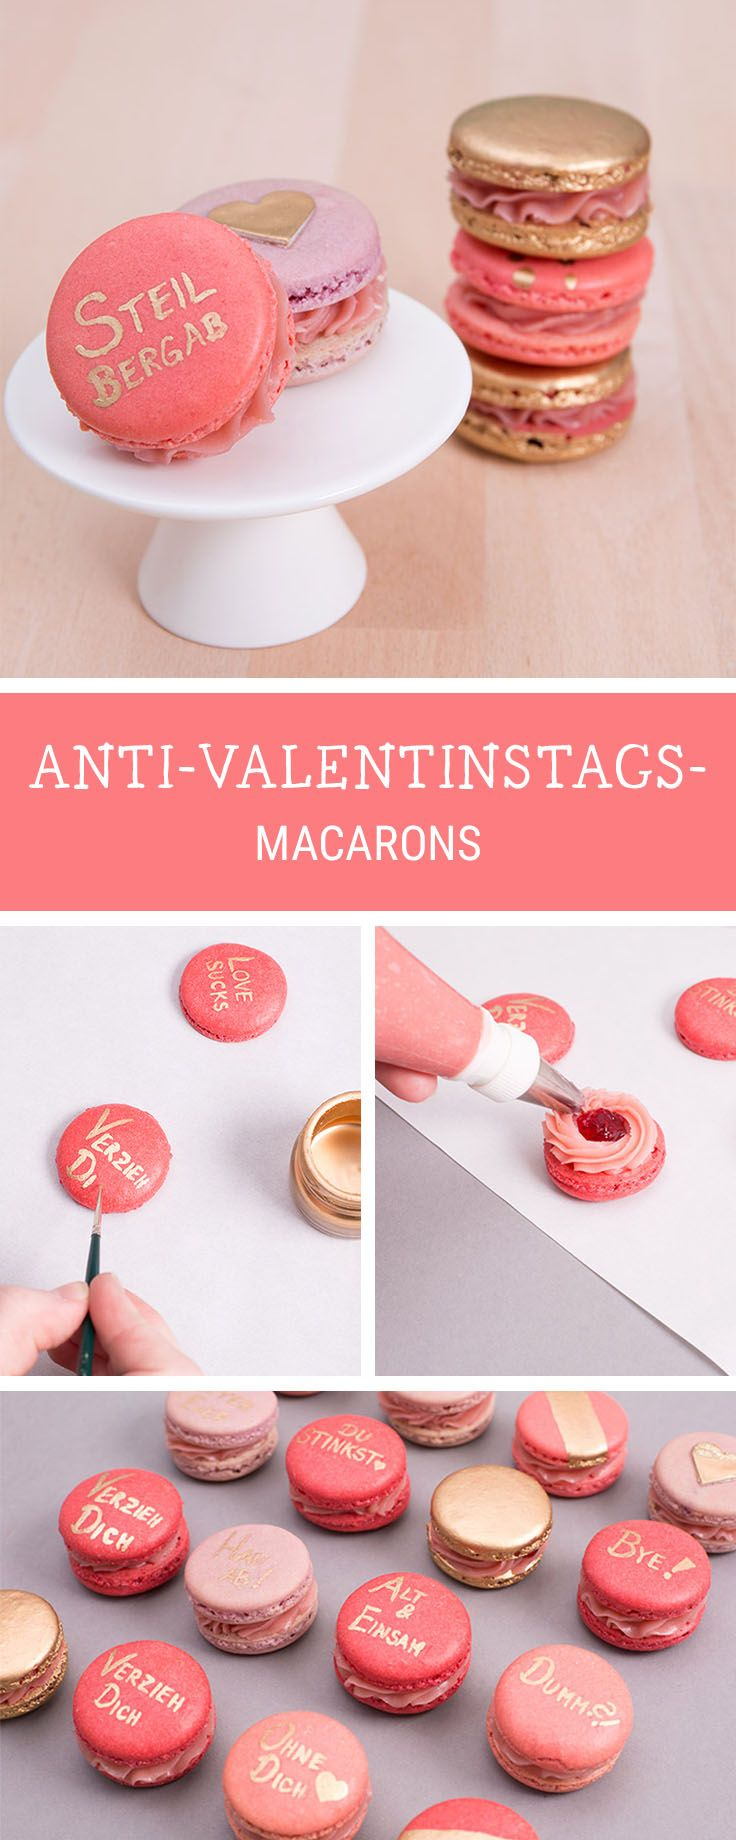 Witzige Geschenkidee für den Anti-Valentinstag: Macarons mit süßer Botschaft / macarons recipe for anti Valentine's Day, party food via DaWanda.com